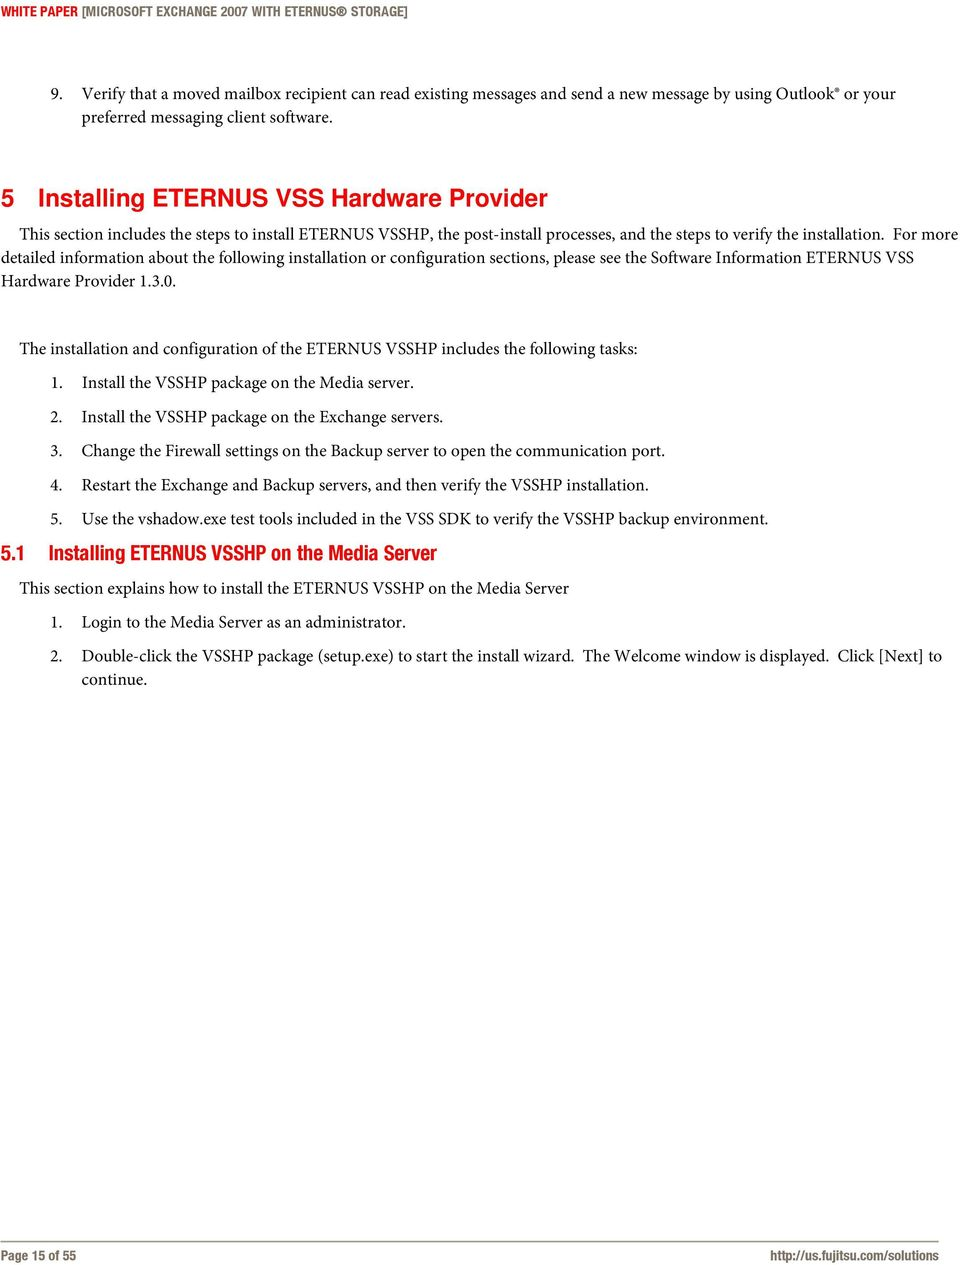 For more detailed information about the following installation or configuration sections, please see the Software Information ETERNUS VSS Hardware Provider 1.3.0.